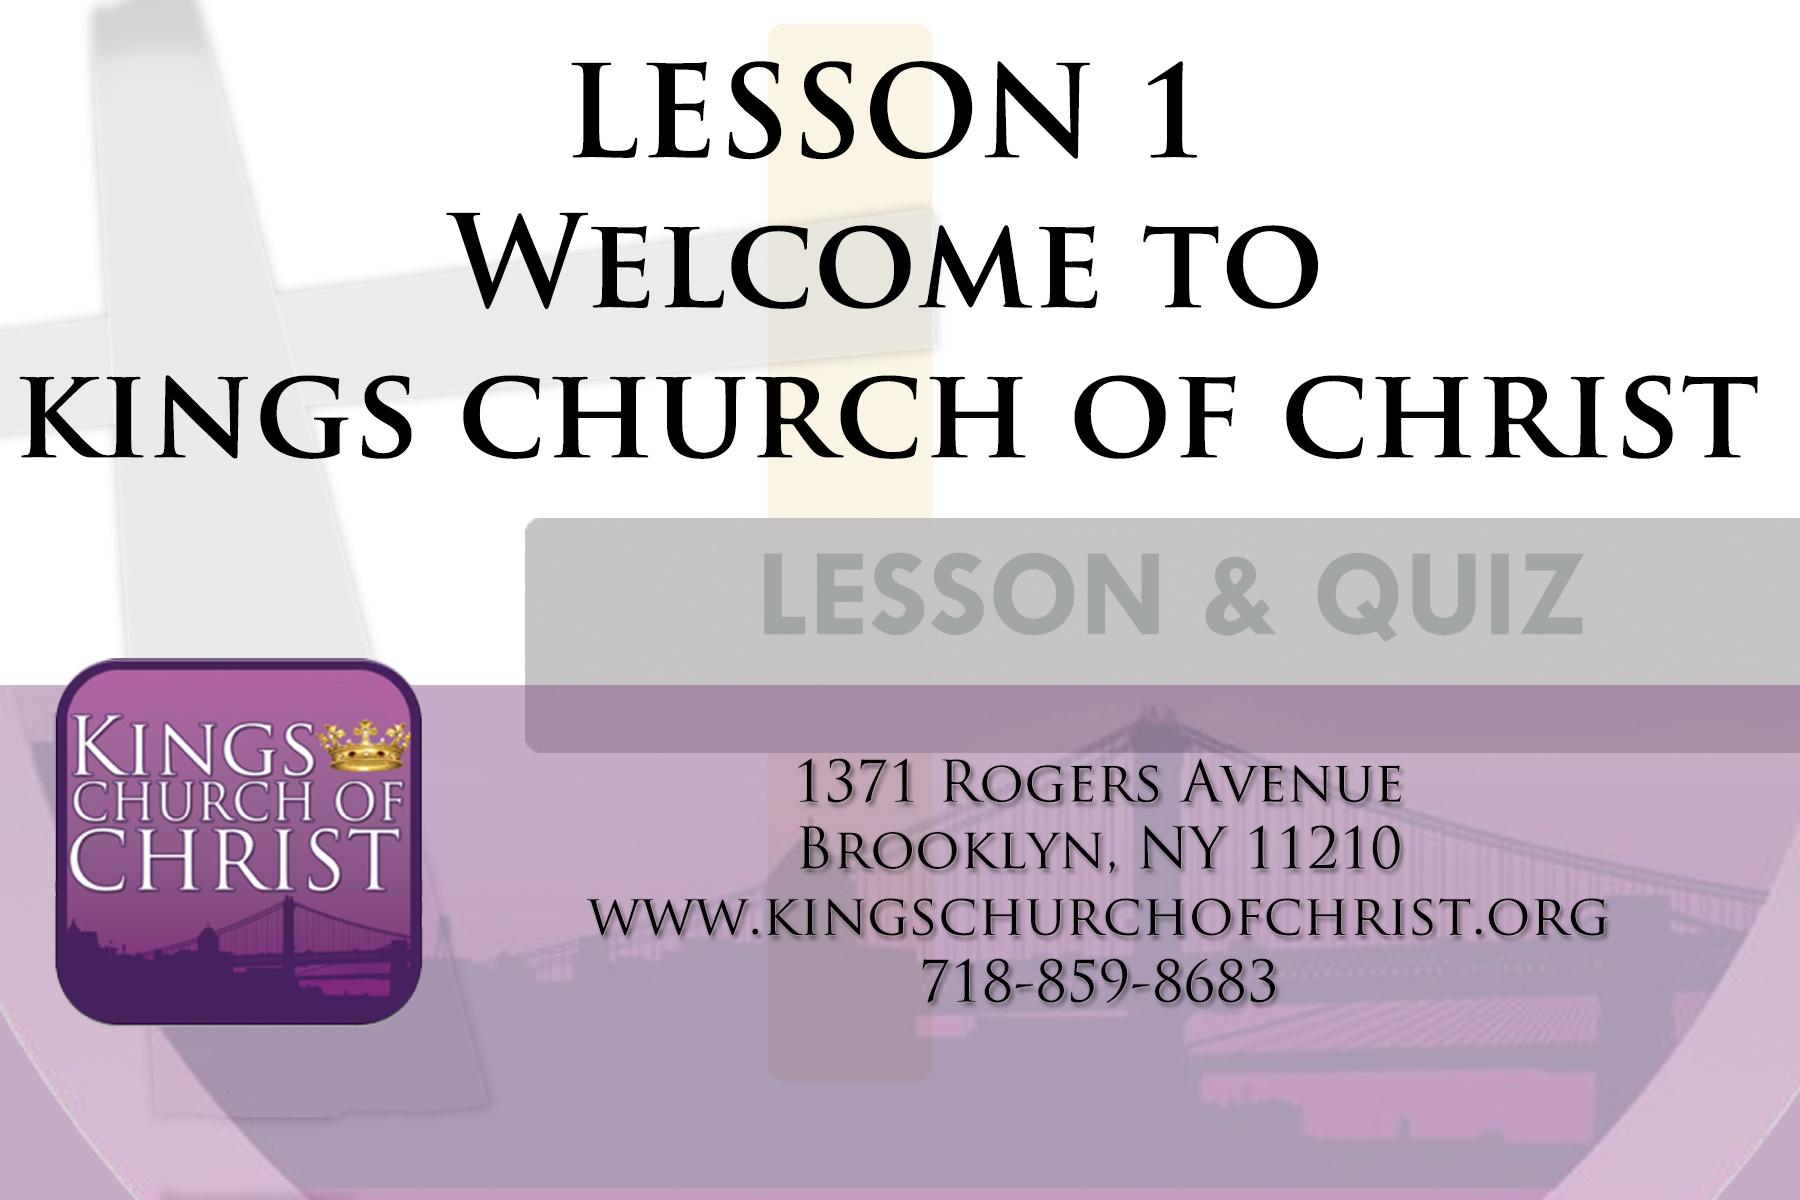 Lesson 1: WELCOME TO KINGS CHURCH OF CHRIST